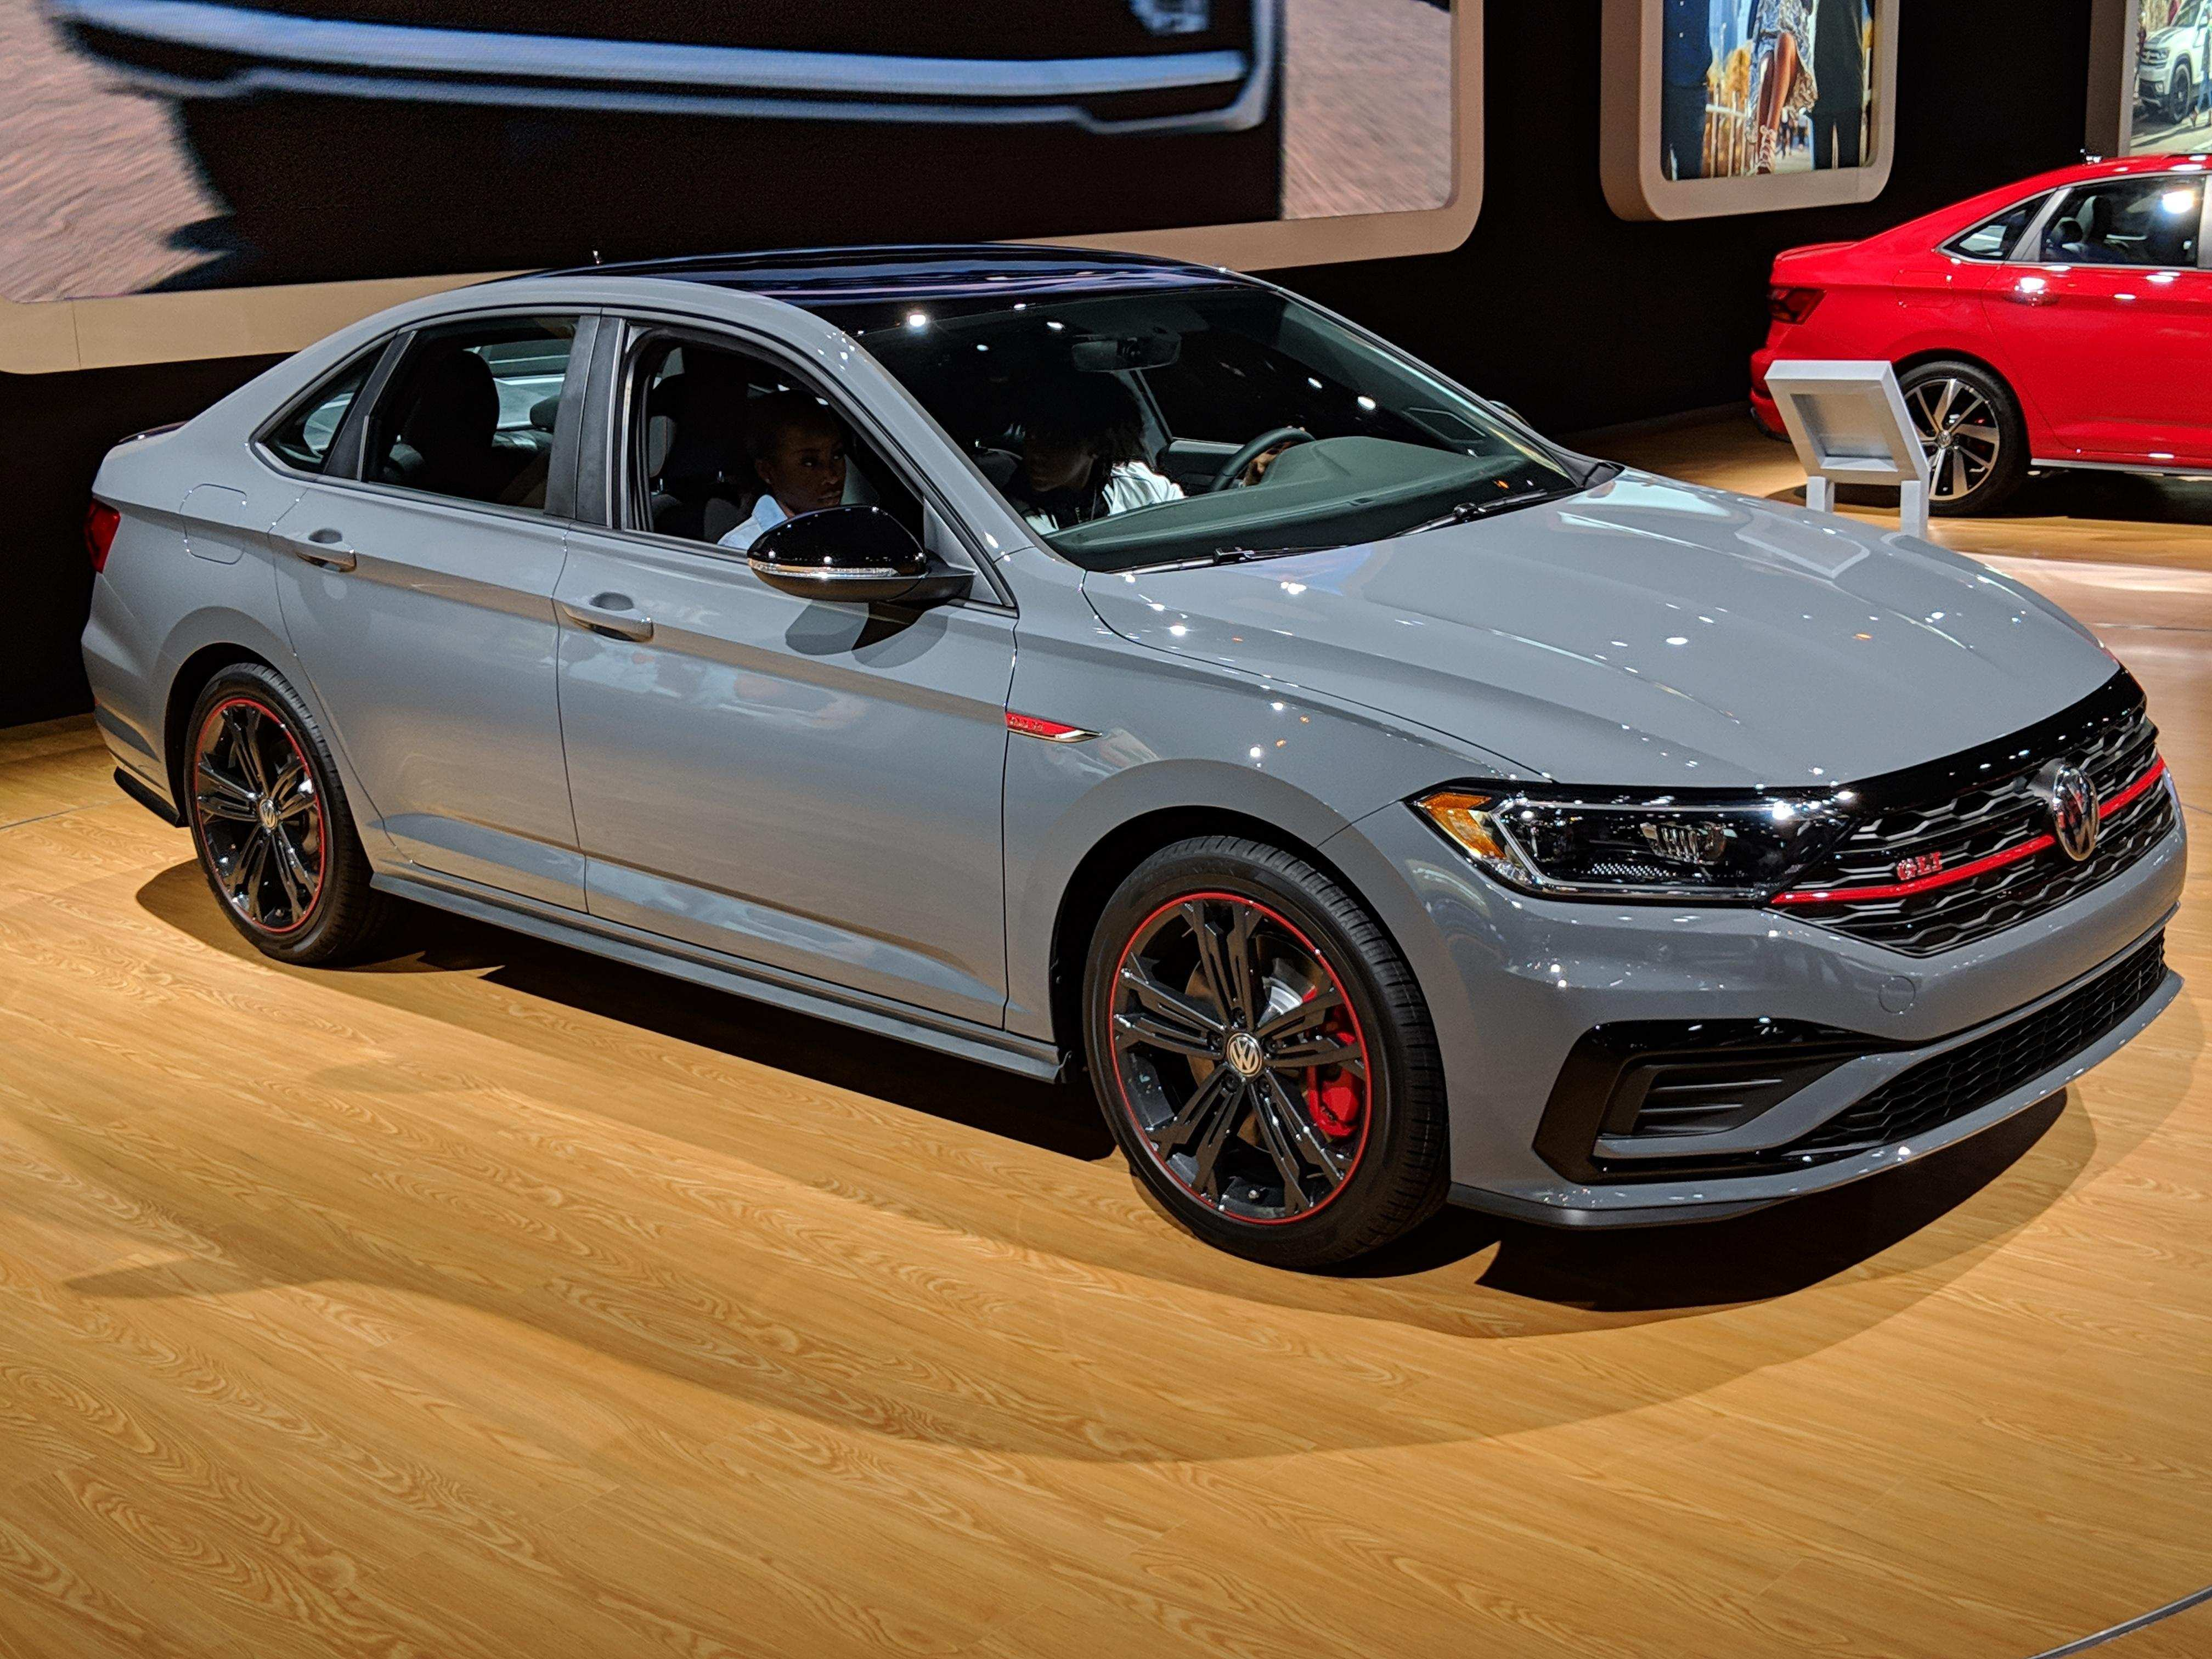 21 Best 2020 Vw Jetta Gli Picture